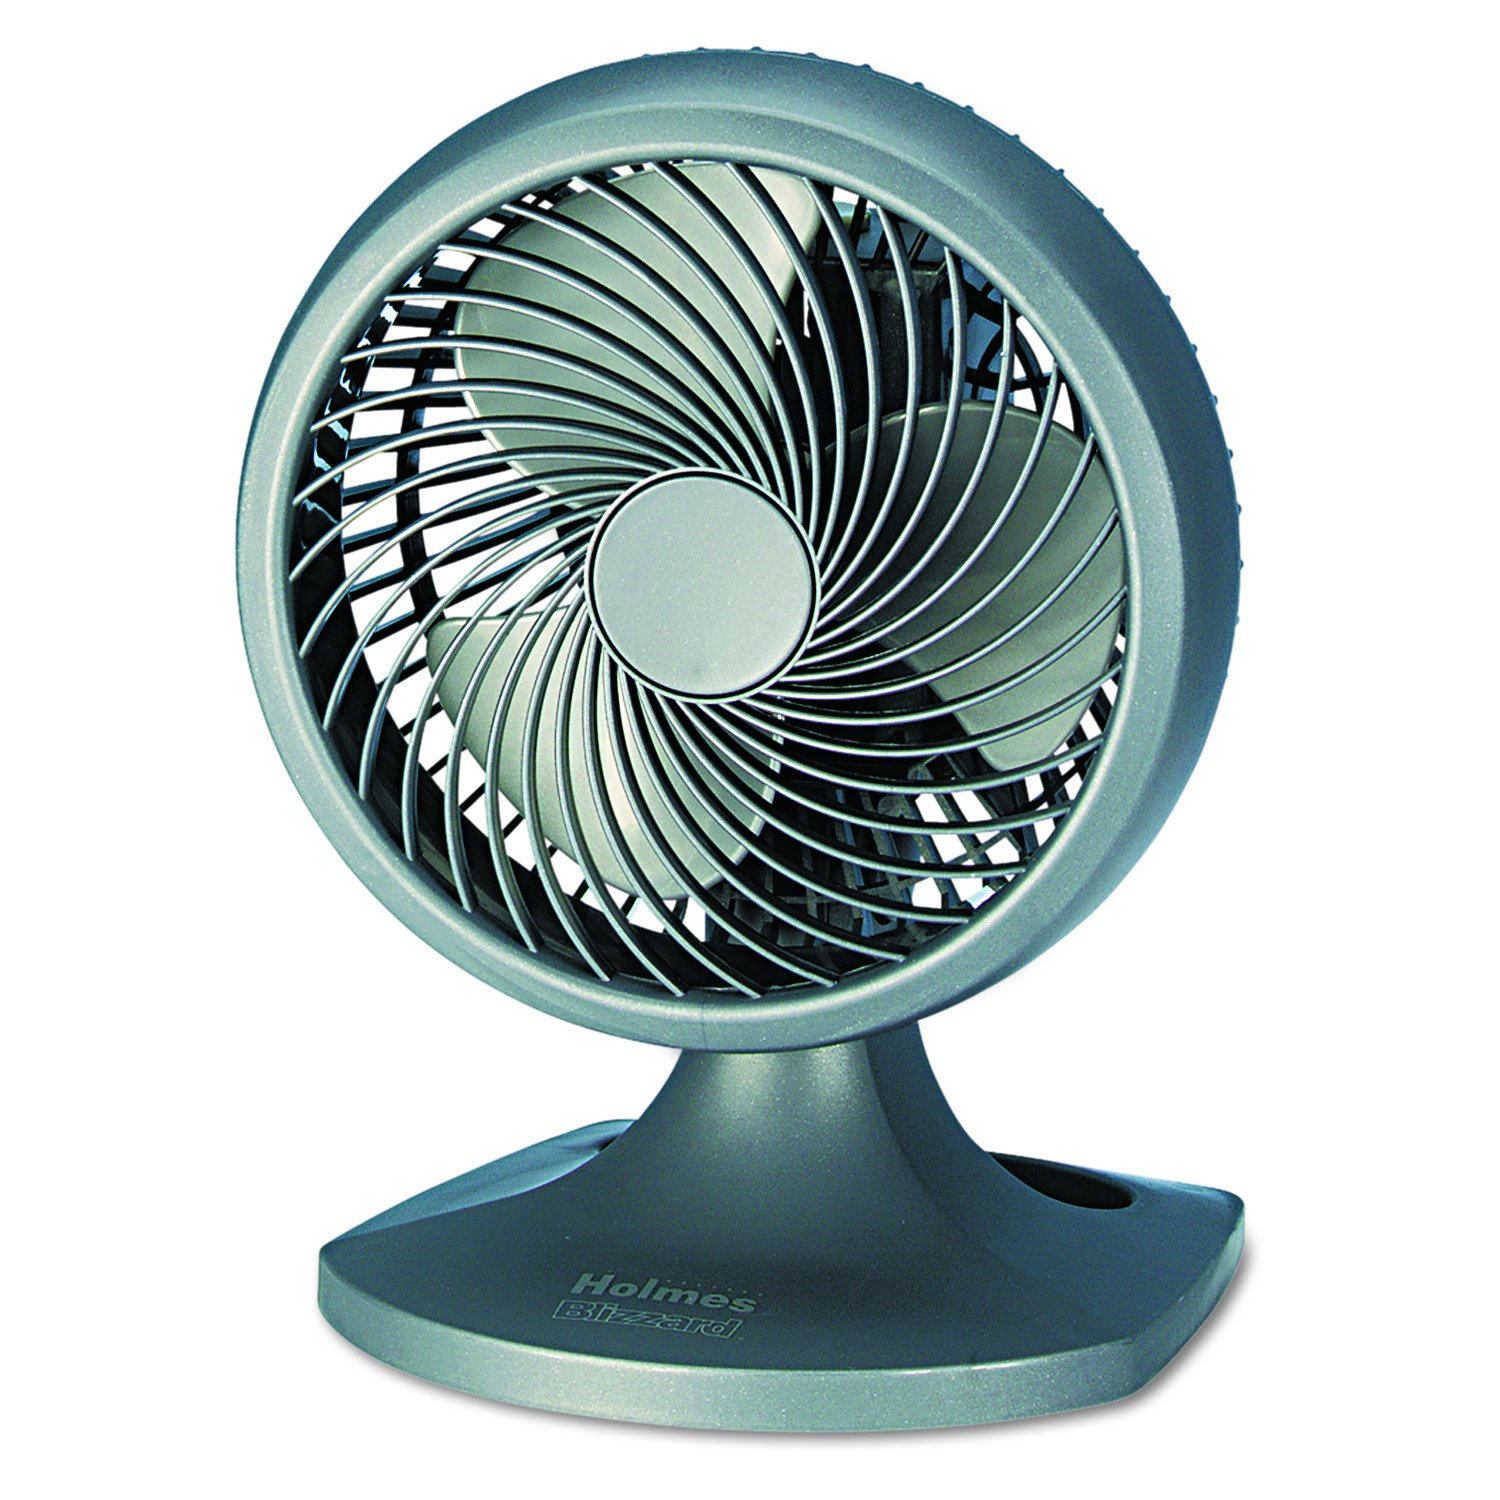 Holmes HOAF90-NTUC Blizzard 9'' Three-Speed Oscillating Table/Wall Fan, Charcoal